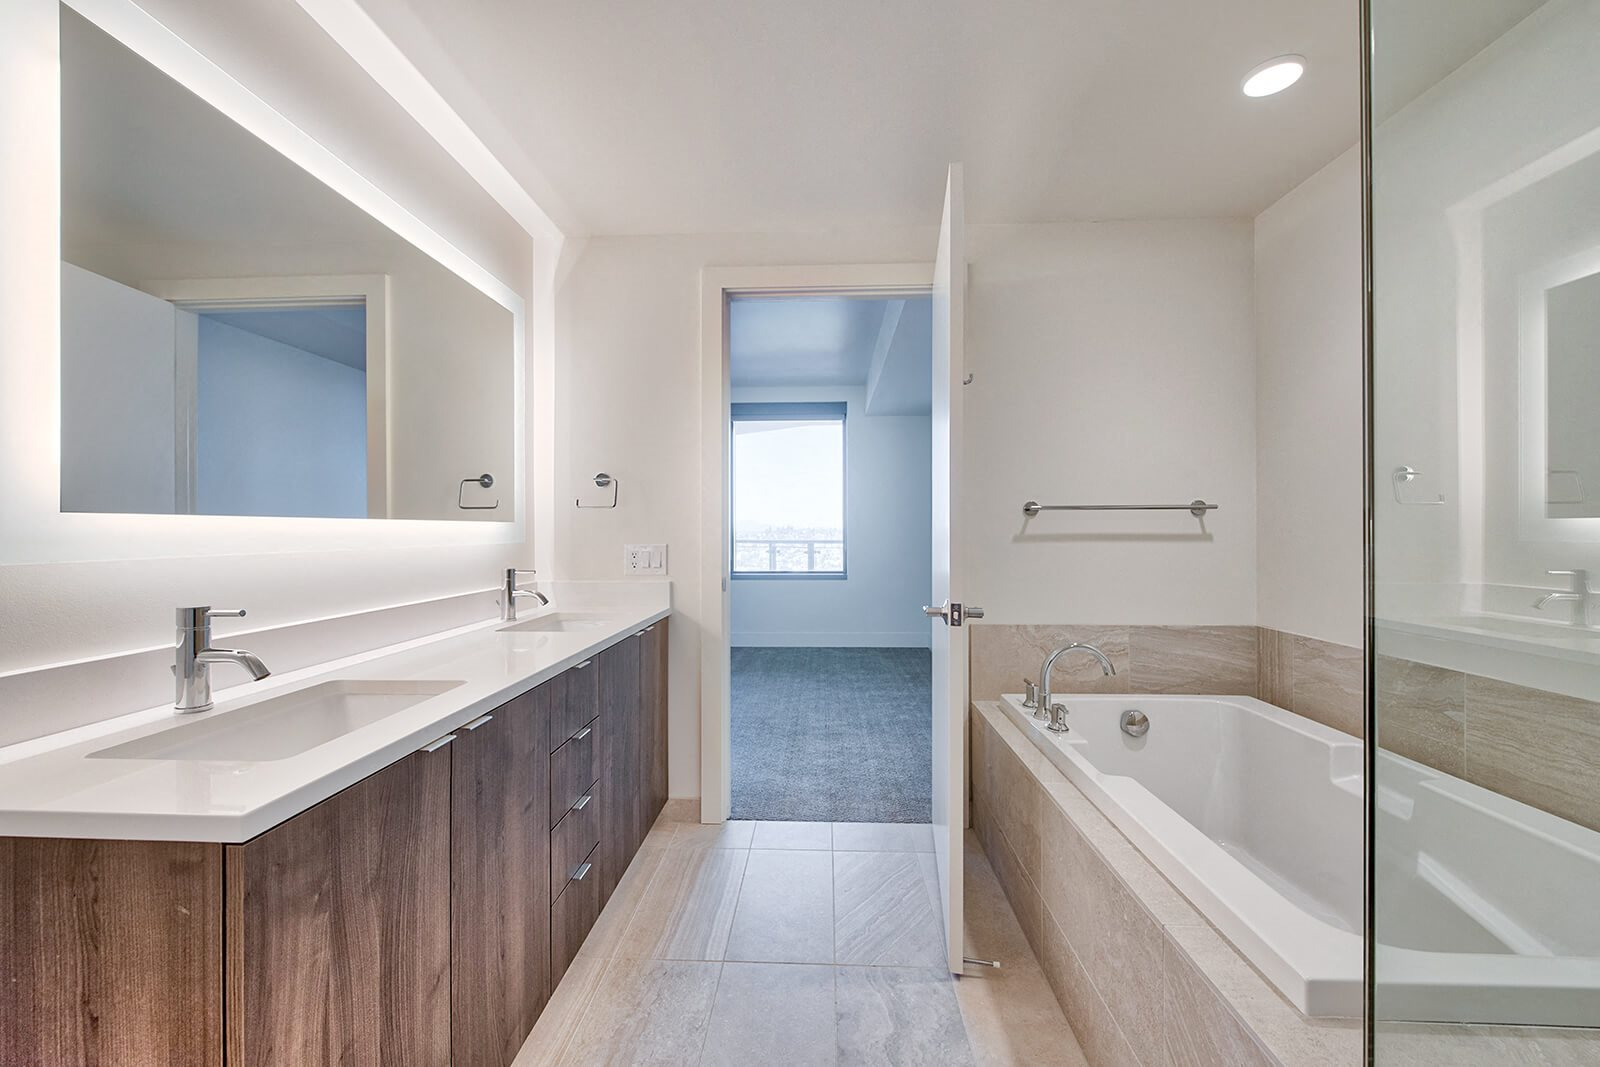 Spa-Inspired Bathroom With Shower And Soaking Tub at Stratus, Seattle